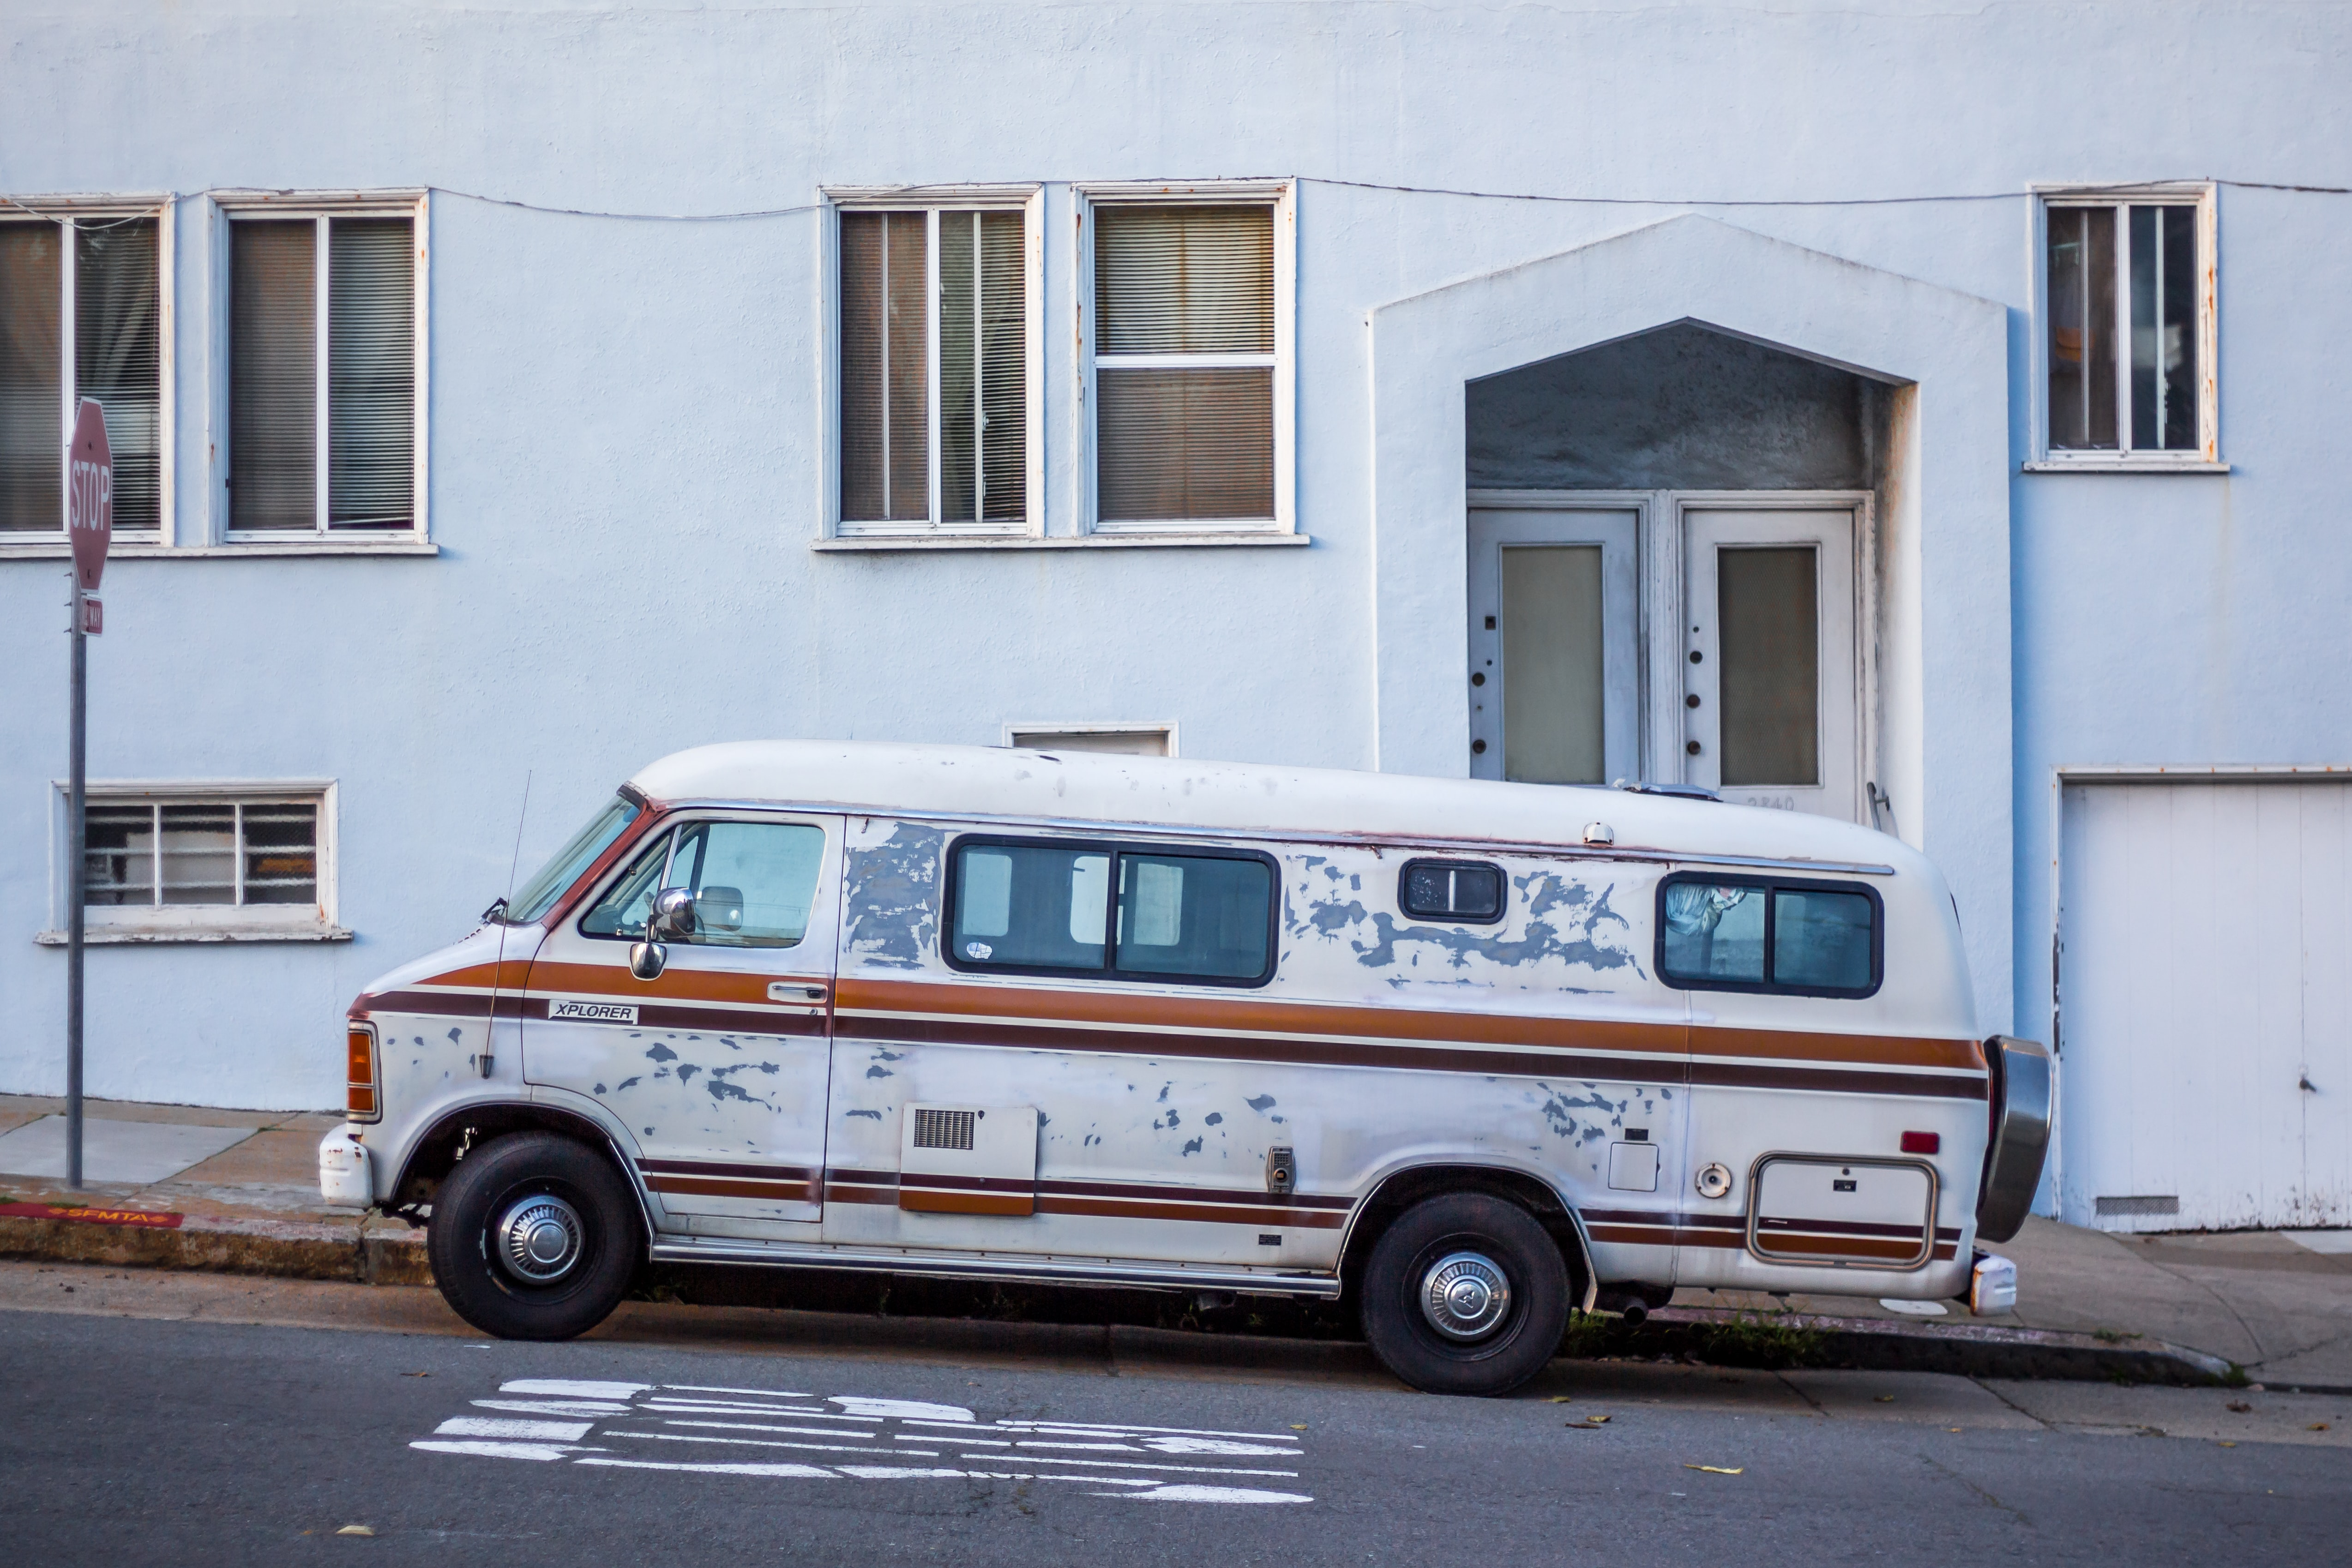 An old van parked by the curb in San Francisco.